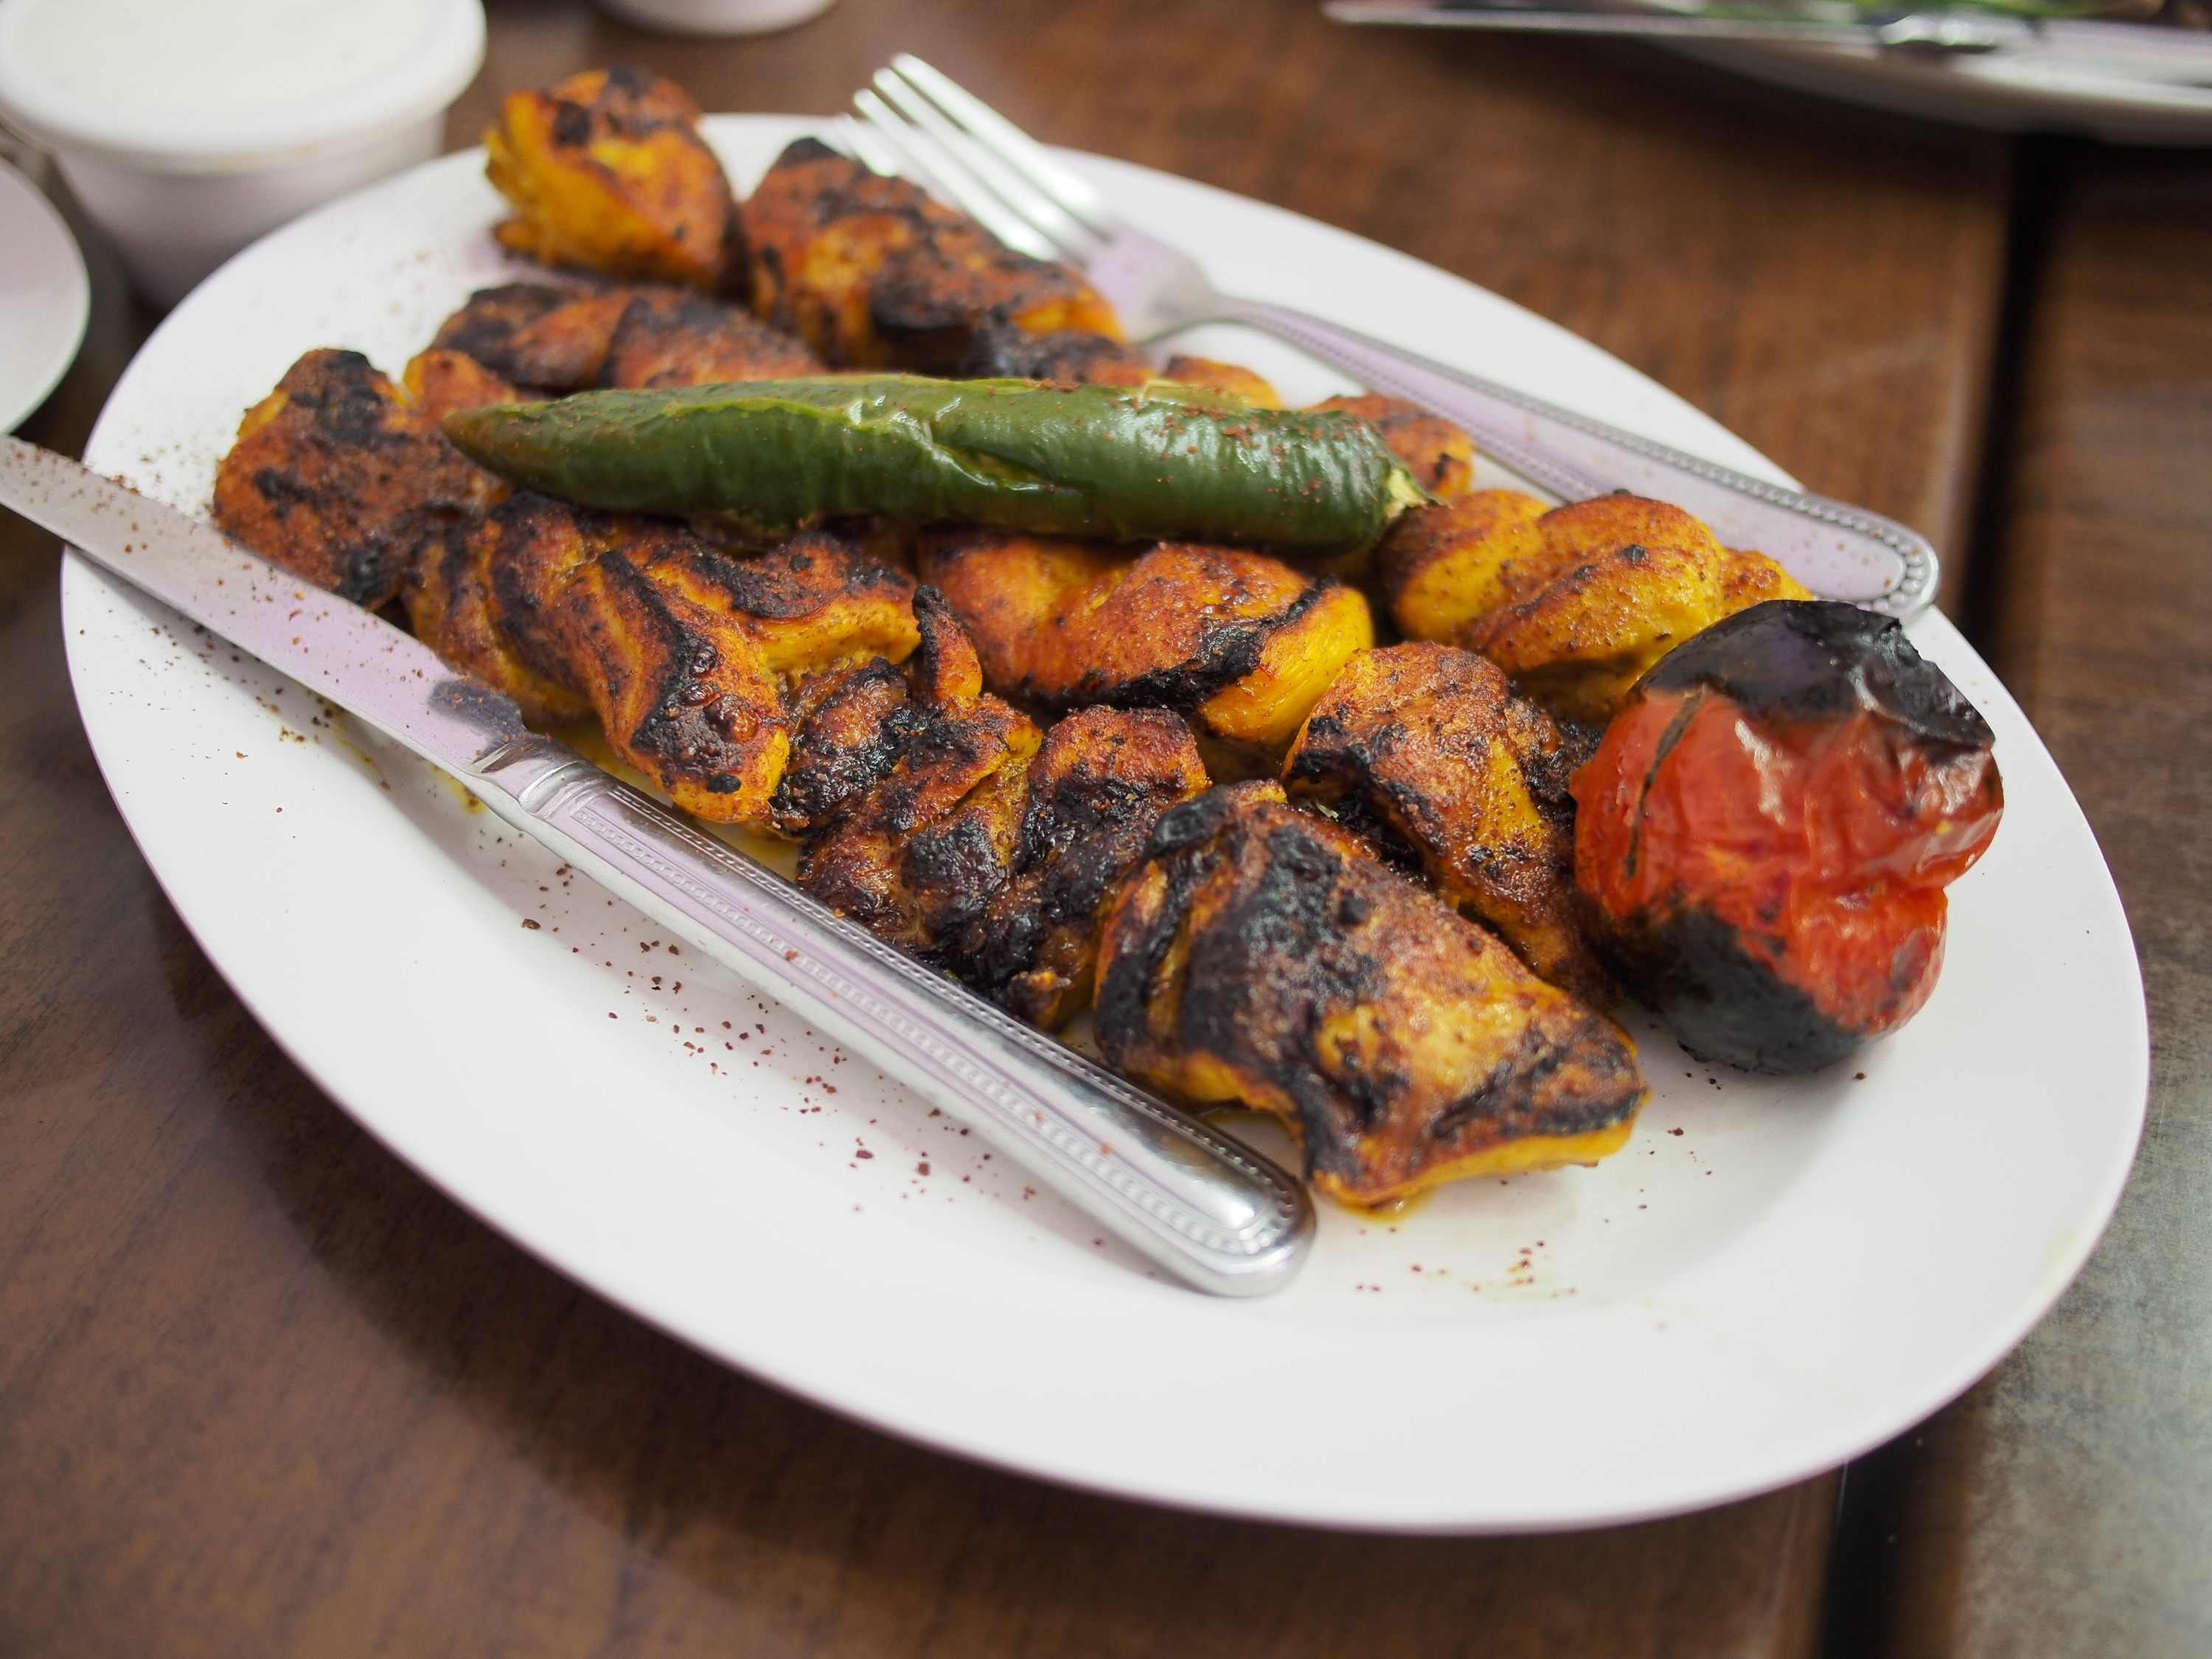 Afghani barbecue on a plate